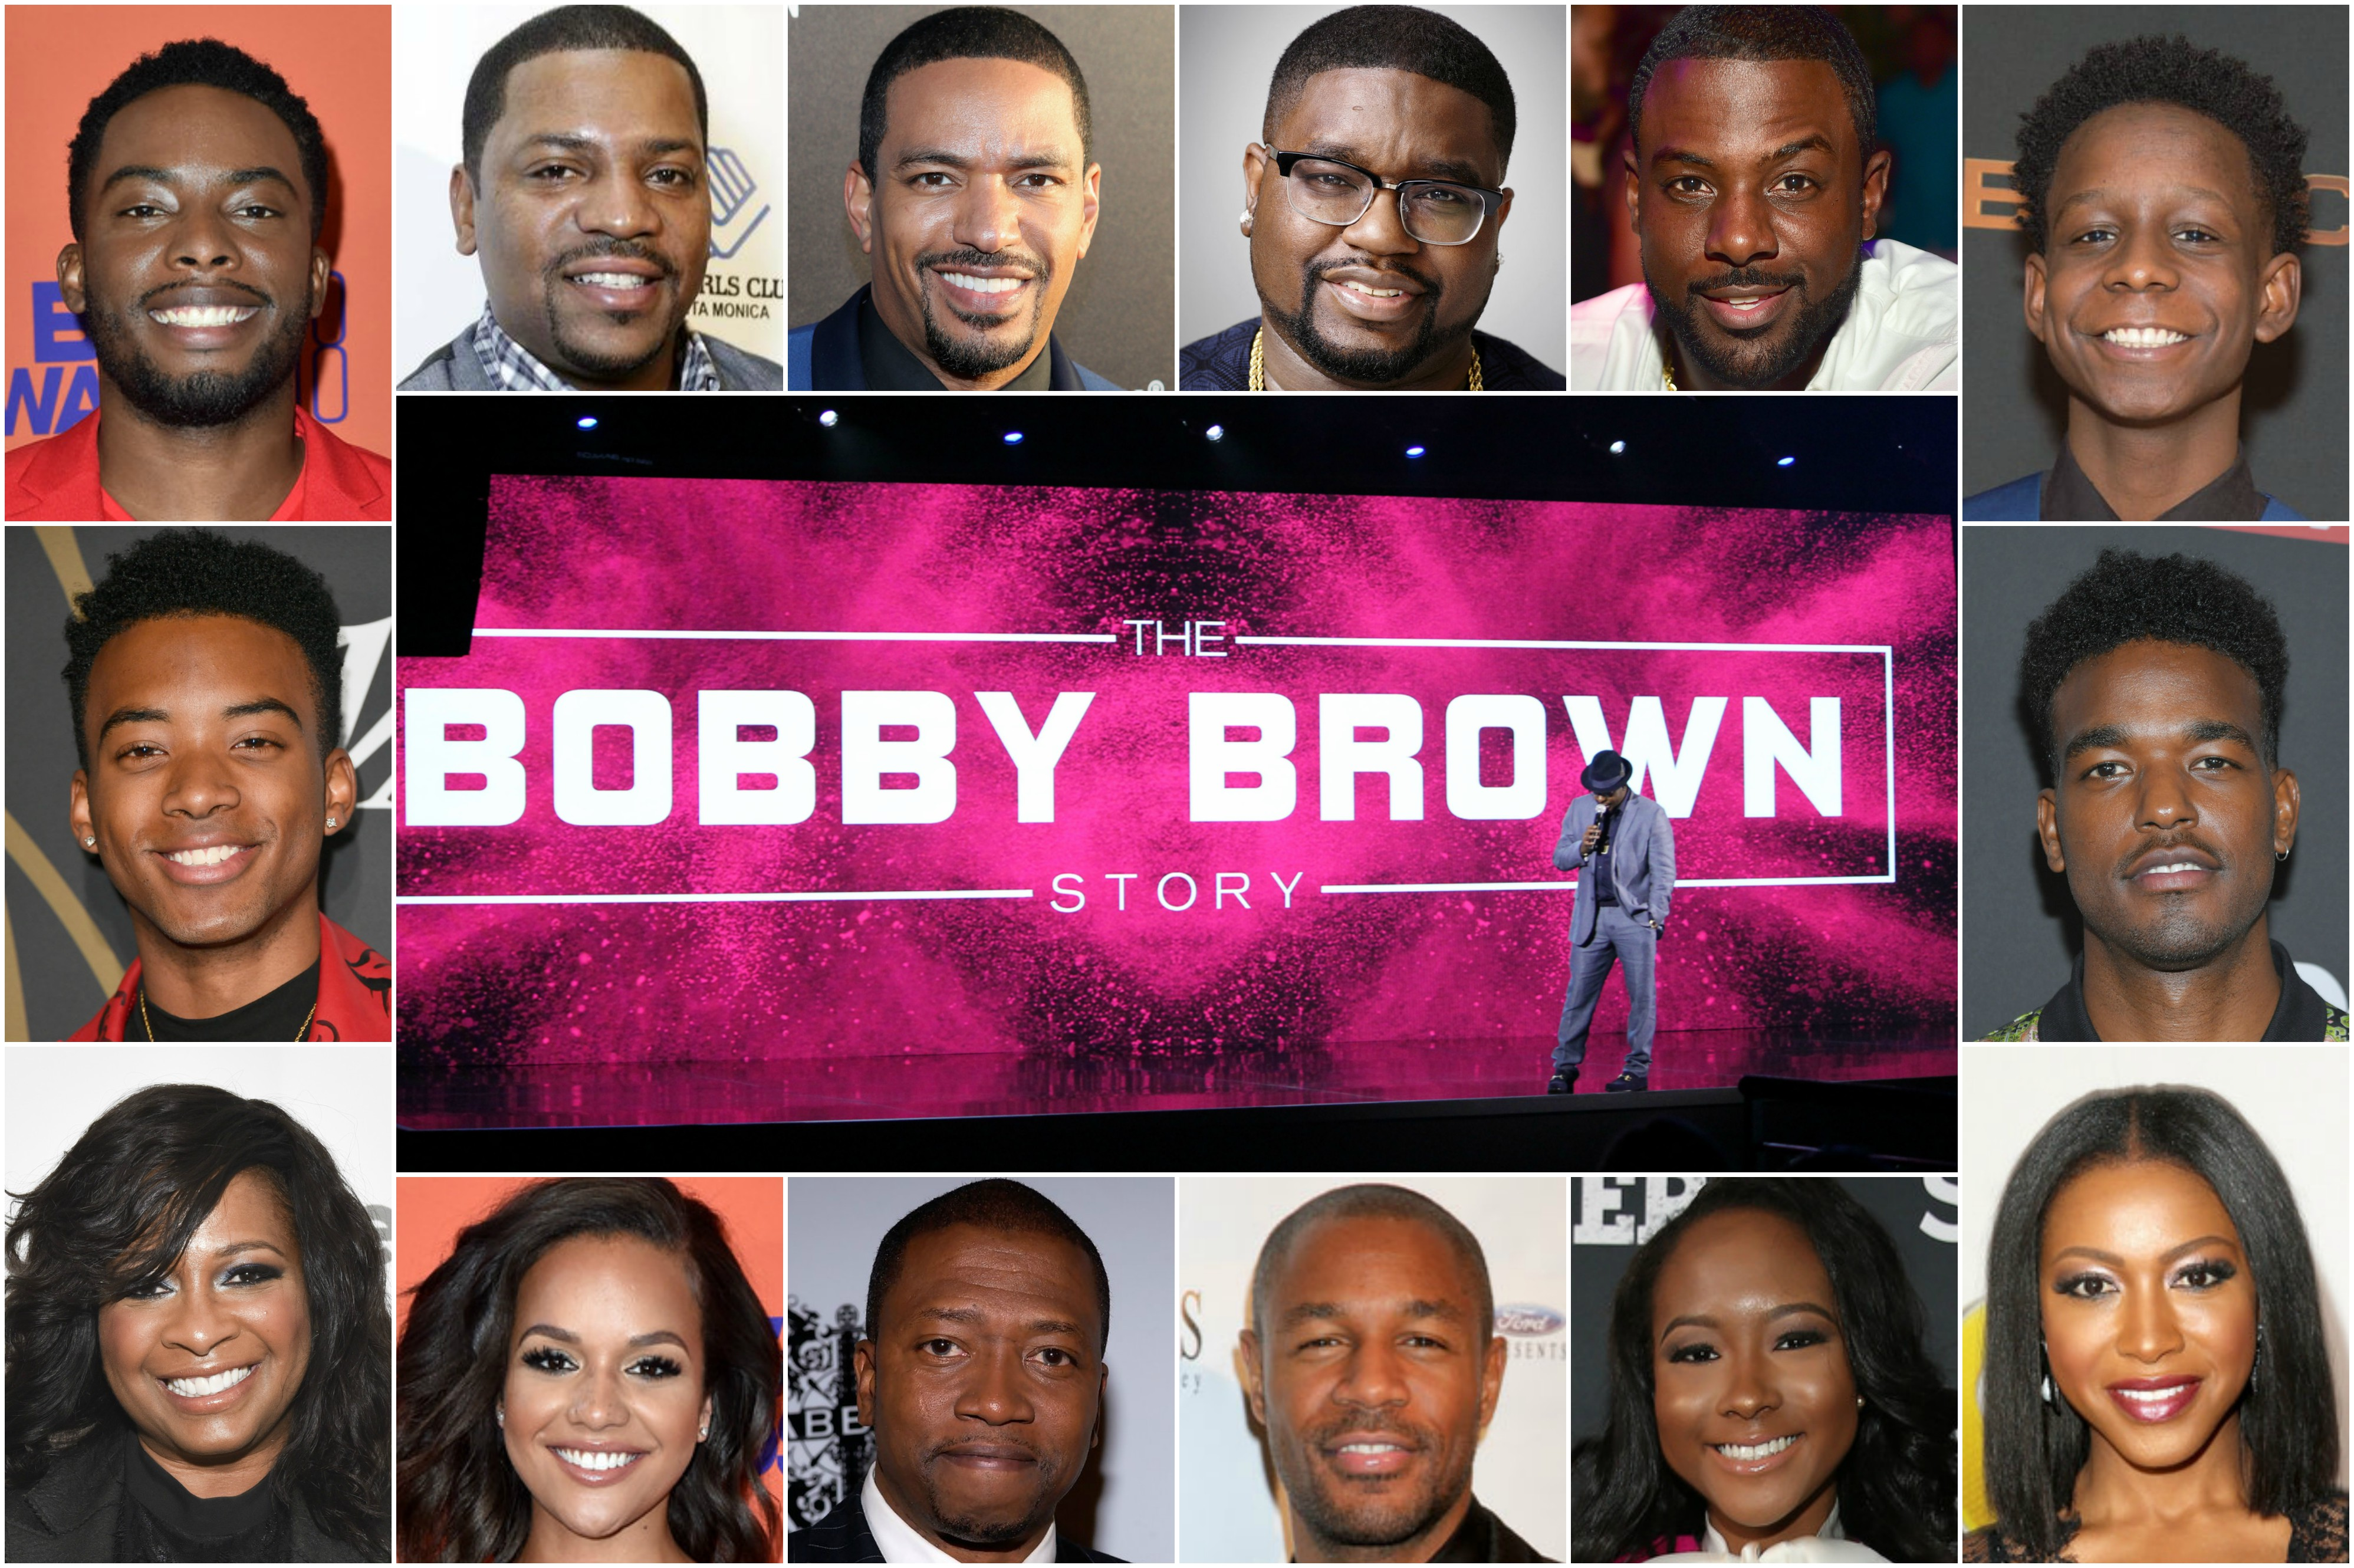 The Bobby Brown Story Thread